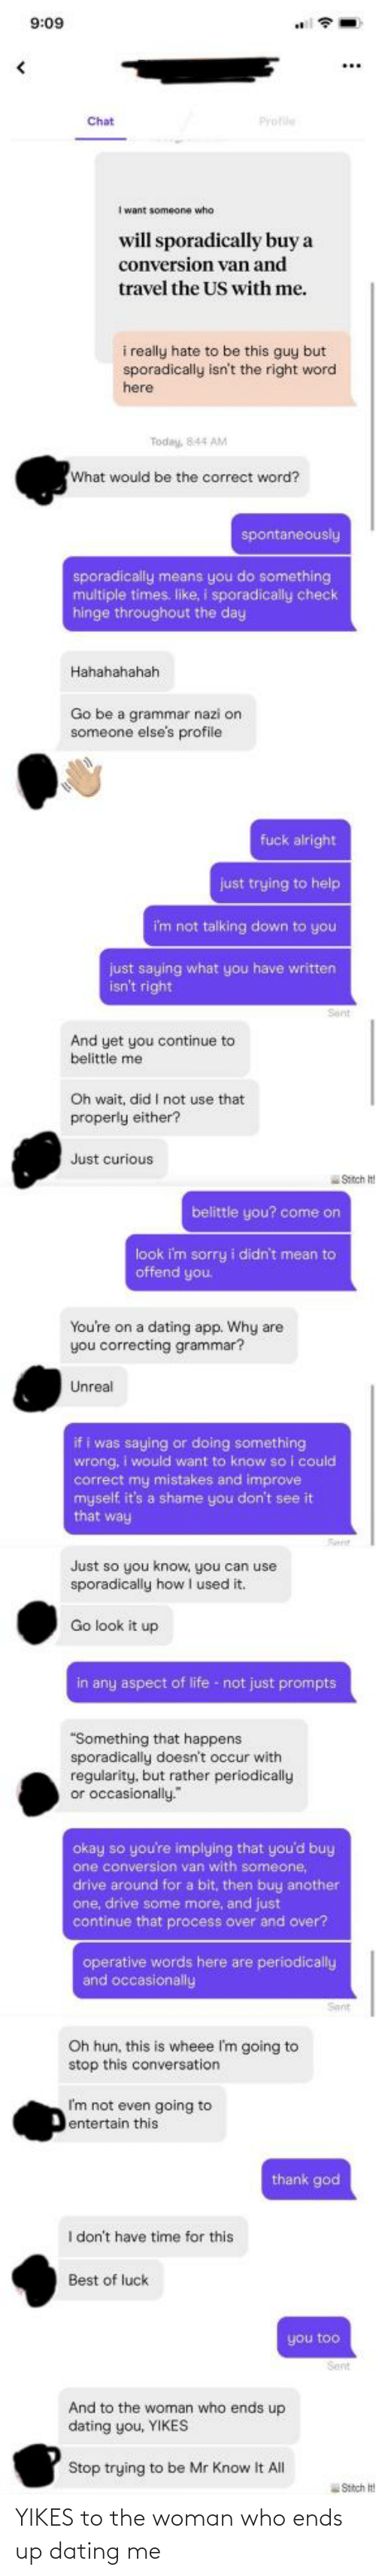 who: YIKES to the woman who ends up dating me